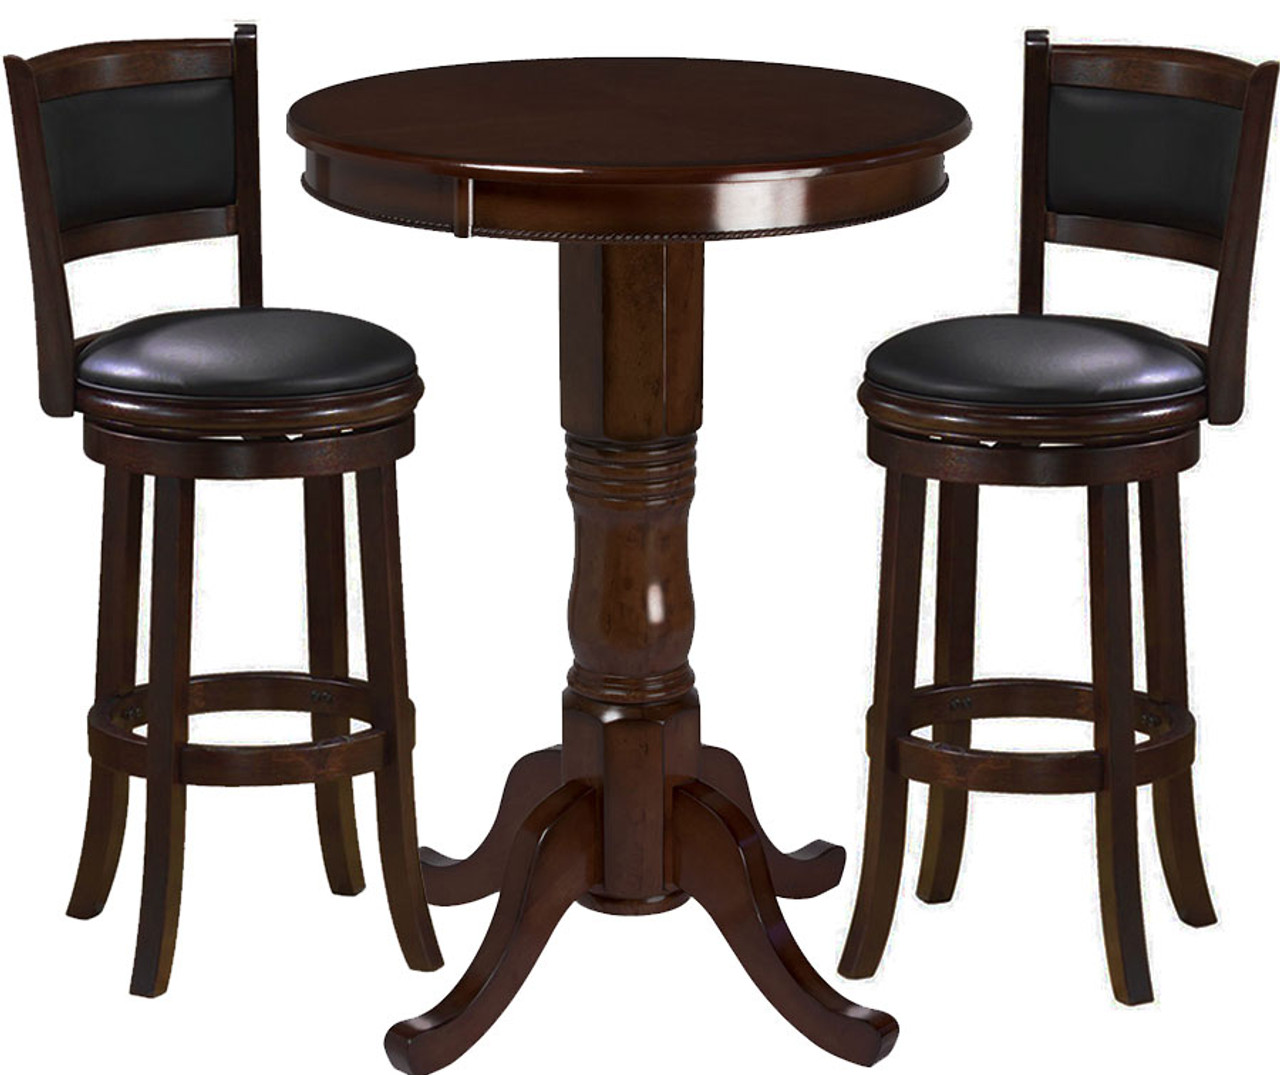 Ram Pub Table Set 3 Piece Cappuccino - Ozone Billiards